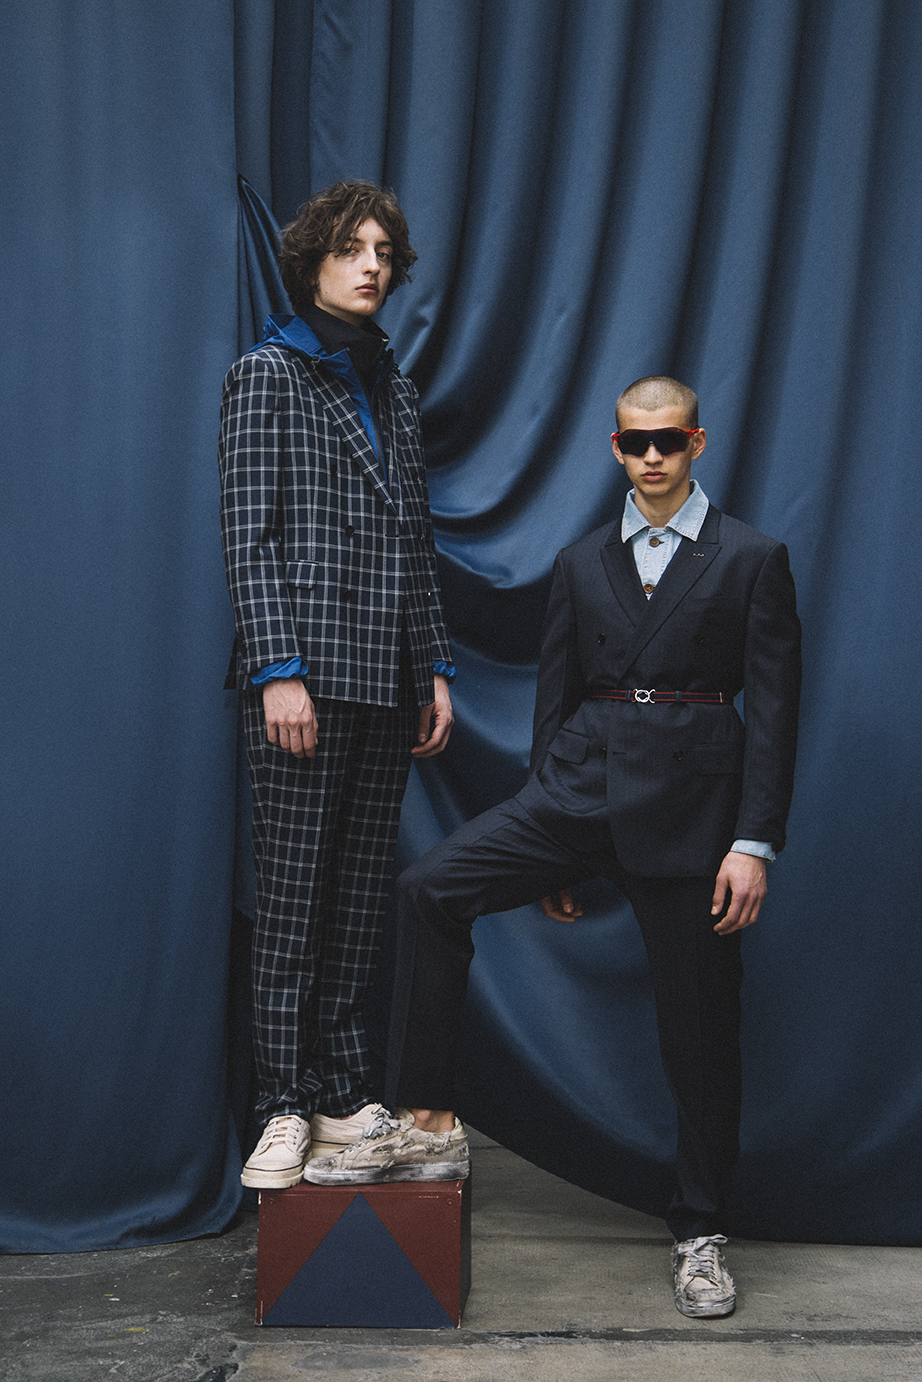 FS3A5237-cardini-alessandrocardini-dior-homme-IL-il-sole-24-ore-stylist-editorial-fashion-editors-vogue-moda-fashion-photo-gucci-armani-balenciaga-vuitto